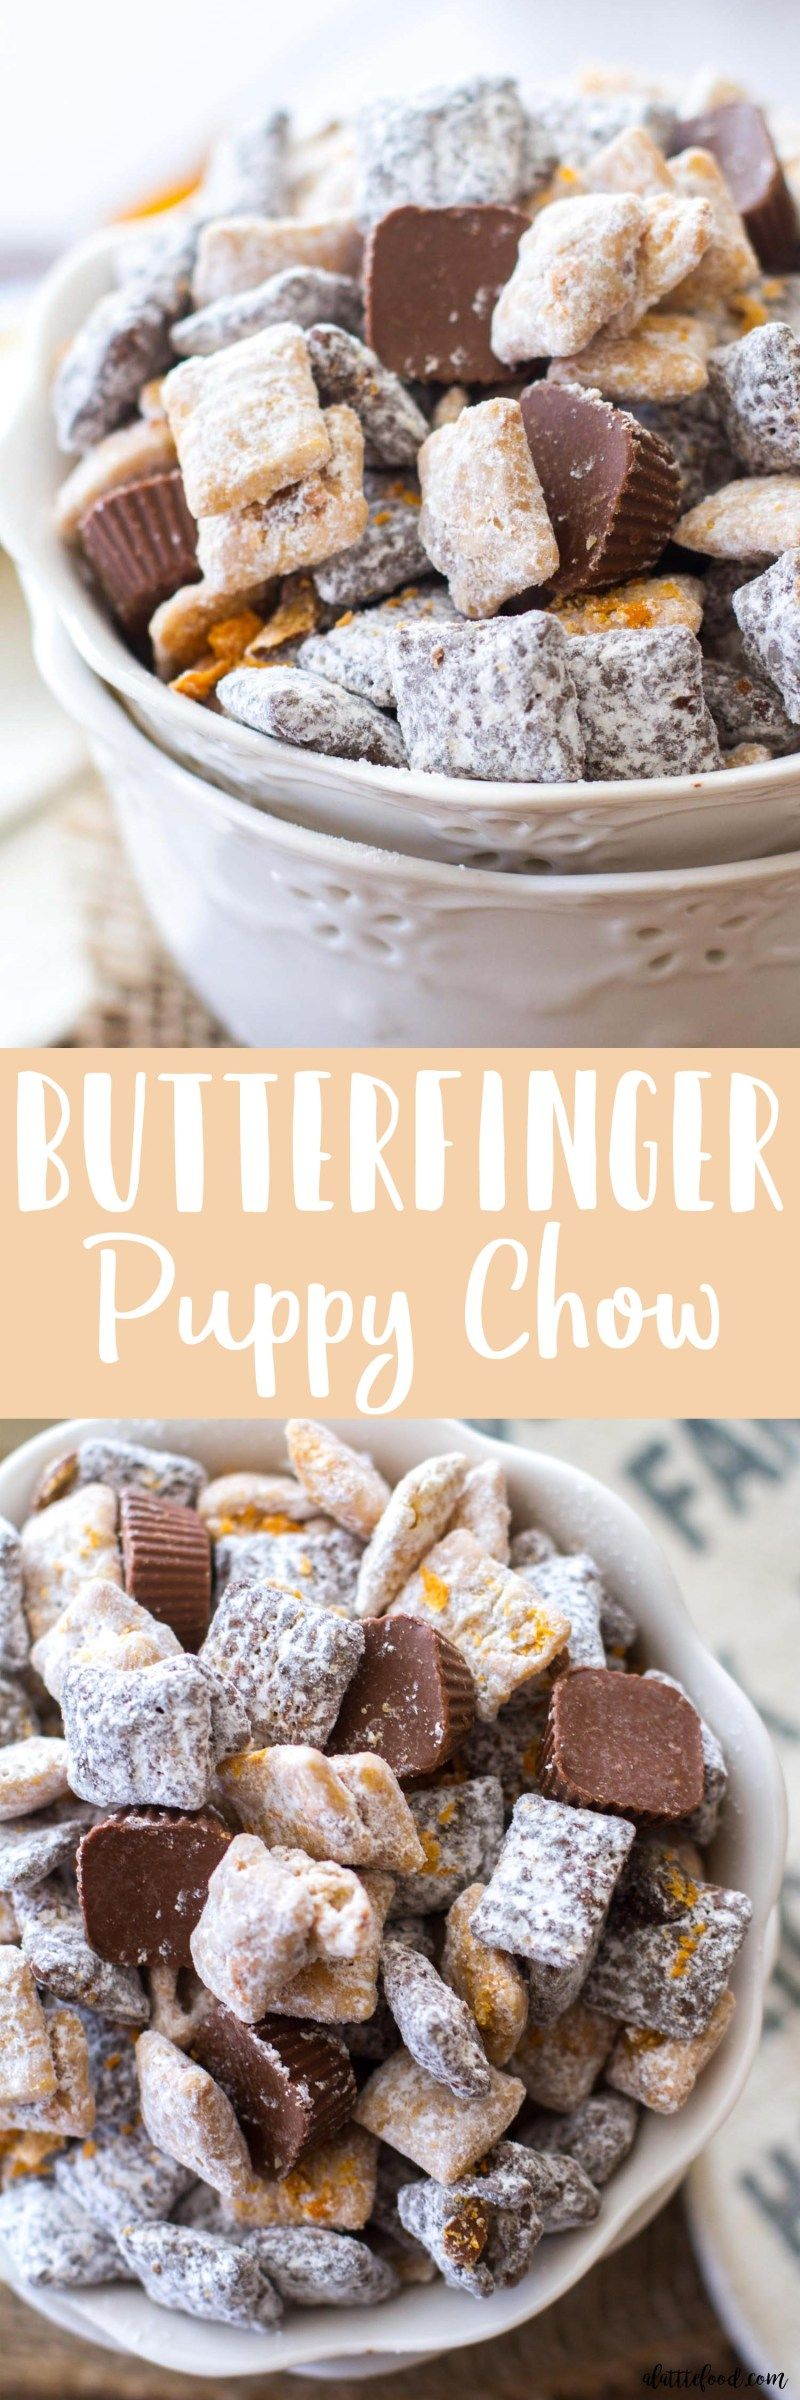 This easy puppy chow (muddy buddies) recipe is full of